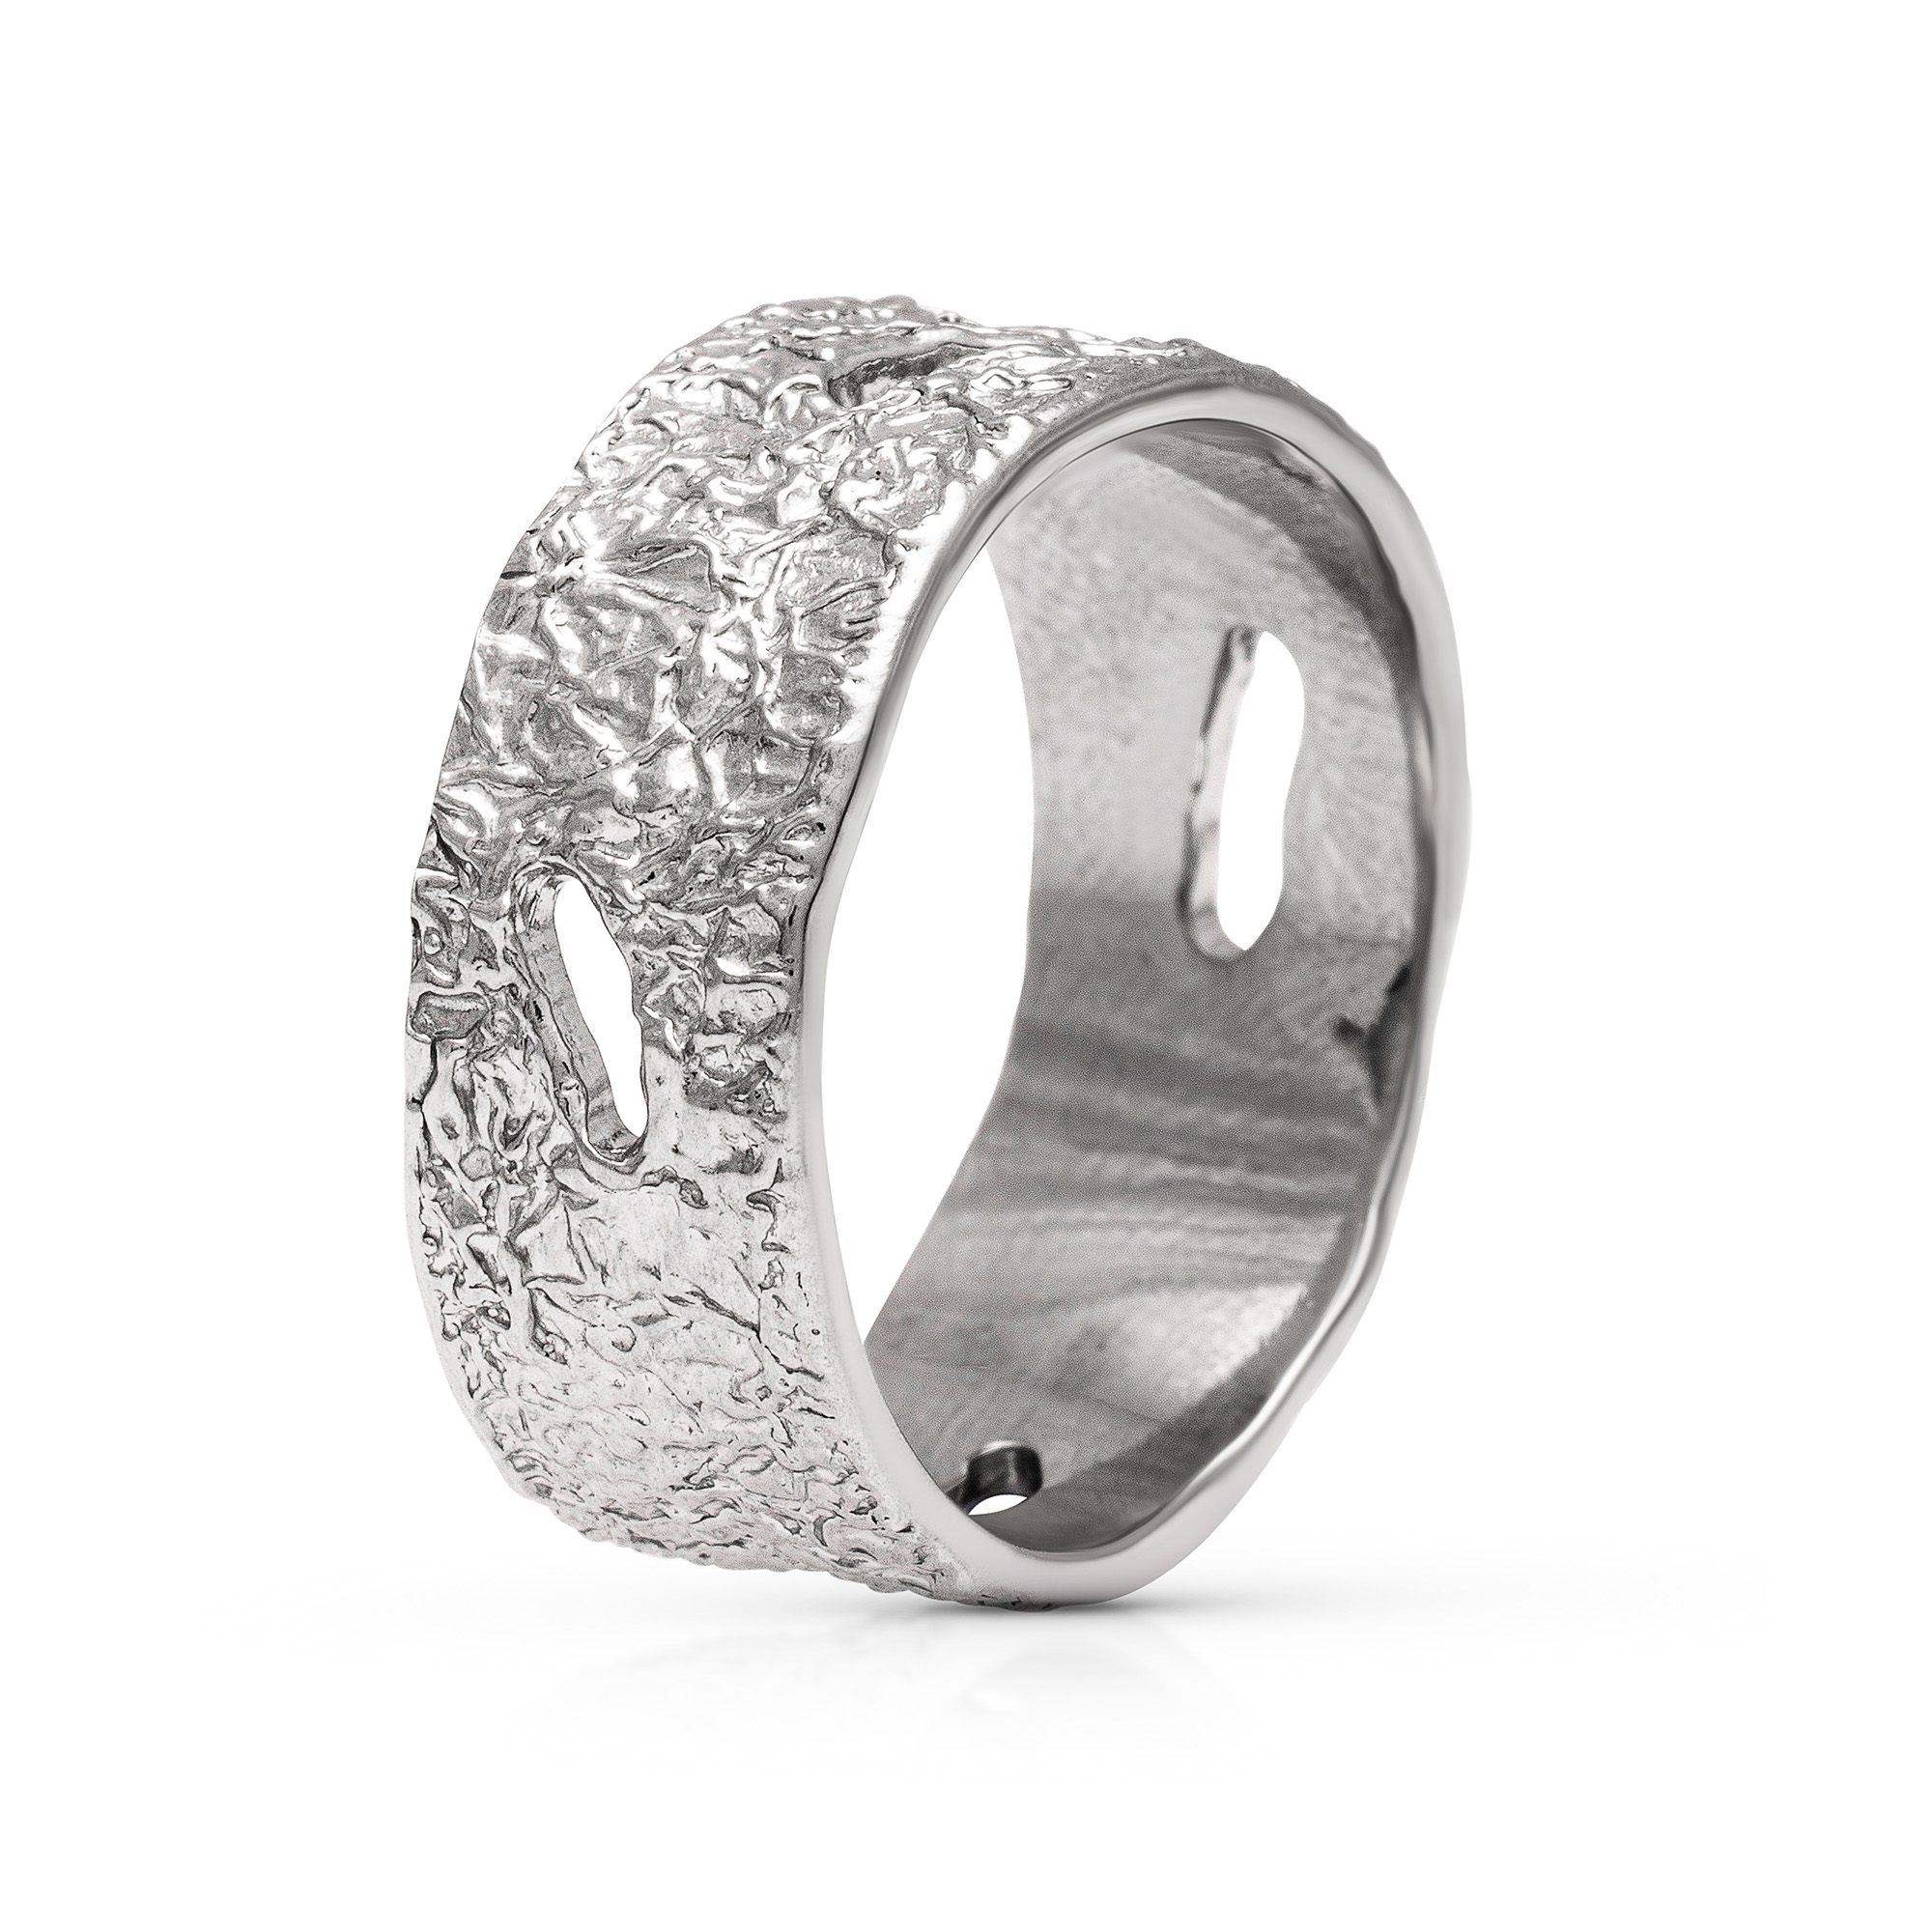 Unique Mens Wedding Band 14K White Gold Band Unique Nature Ring Alternative Men Wedding Ring